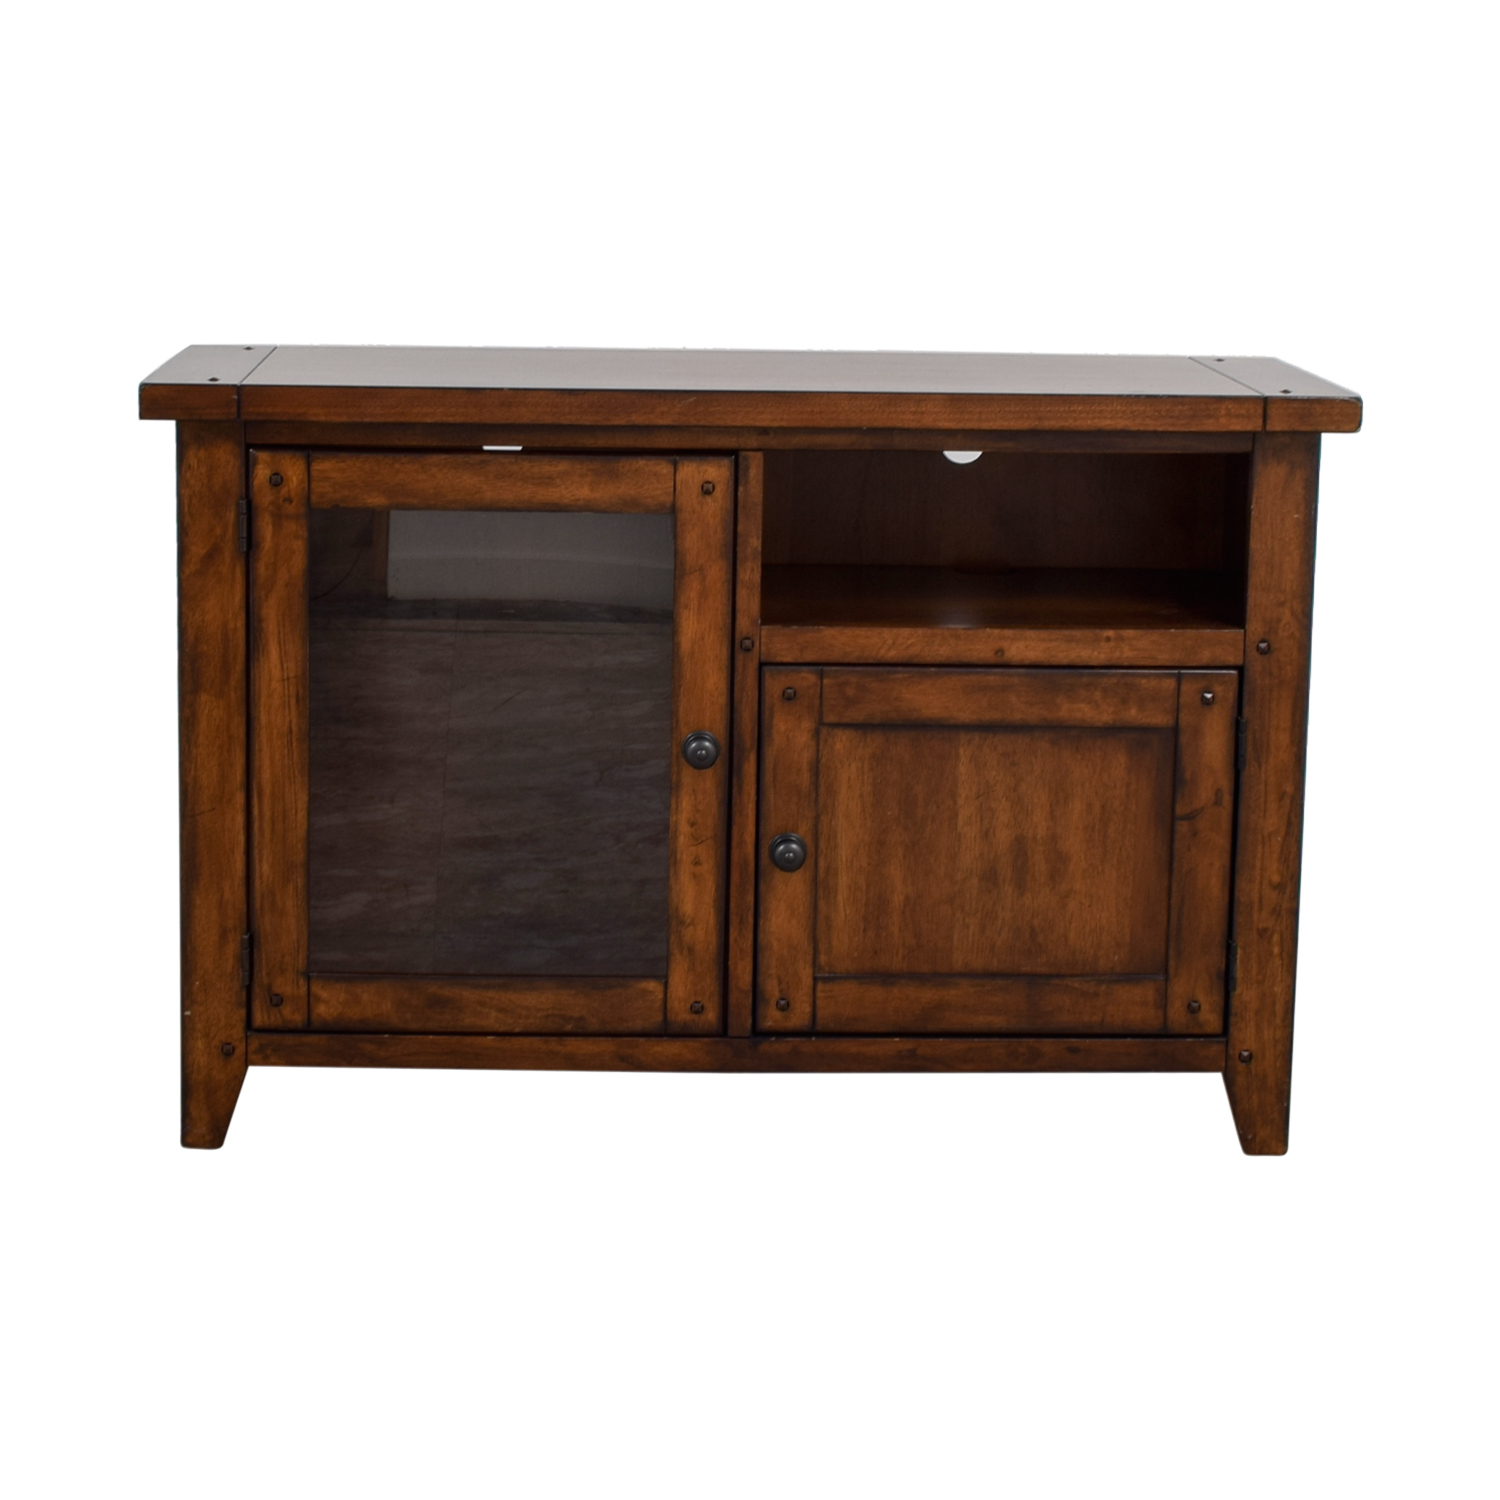 Pottery Barn Pottery Barn Wood and Glass Media Console discount